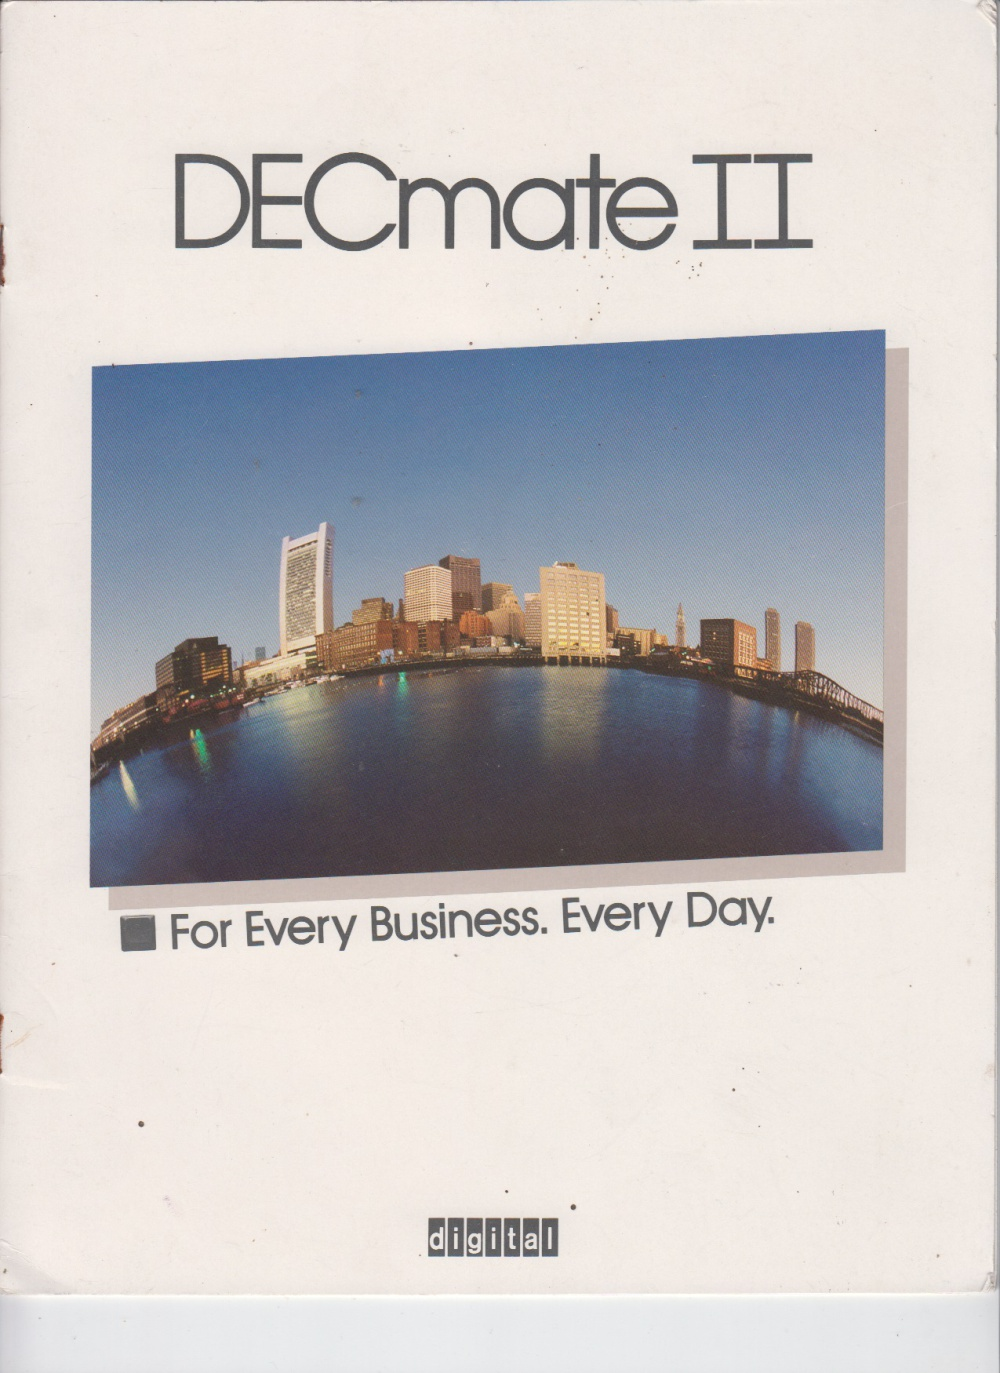 Scan of Document: DECmate II - For Every Business. Every Day.